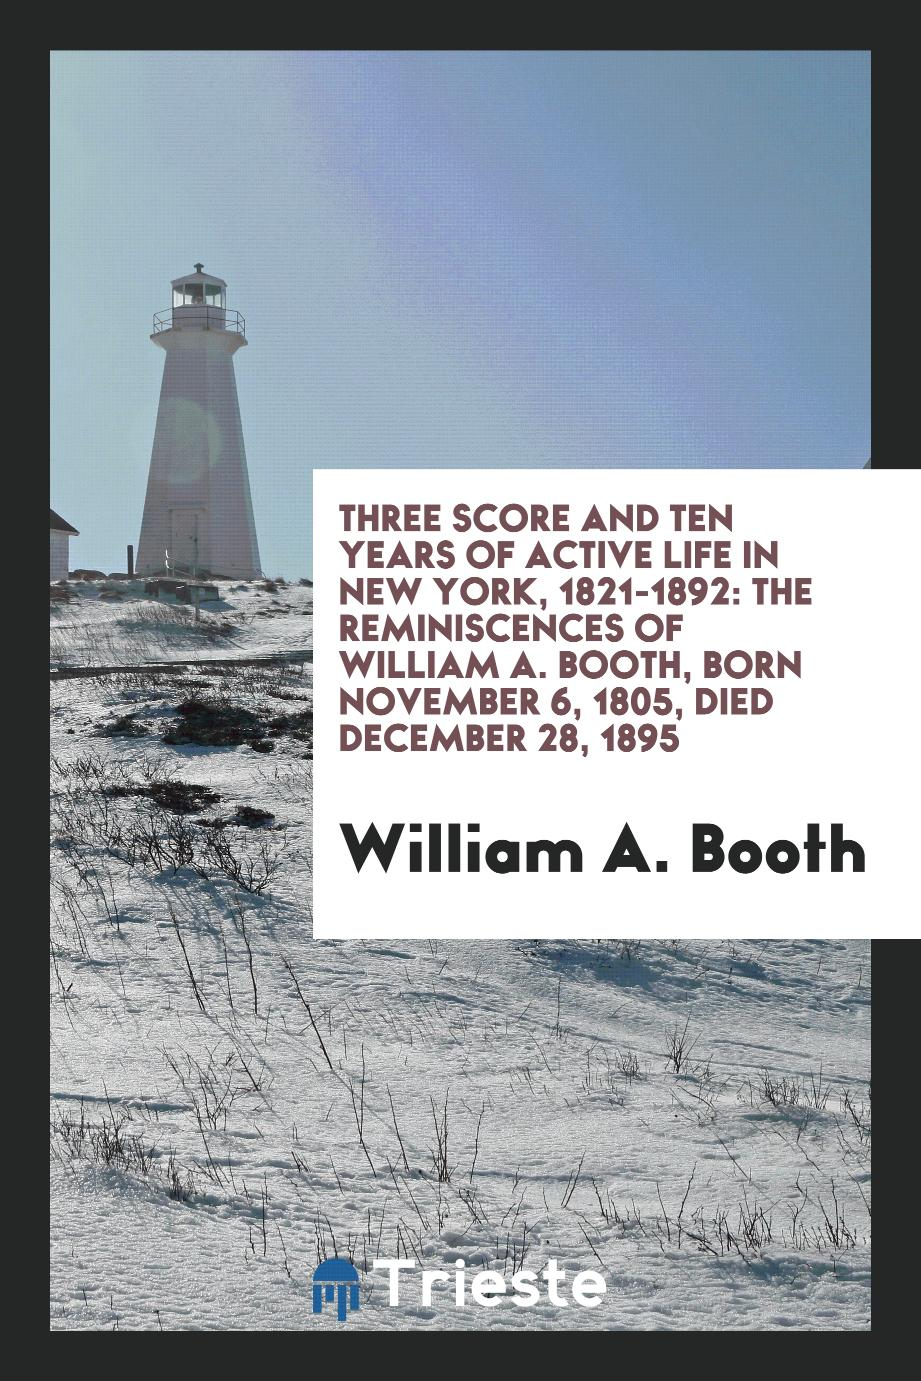 Three score and ten years of active life in New York, 1821-1892: the reminiscences of William A. Booth, born November 6, 1805, died December 28, 1895